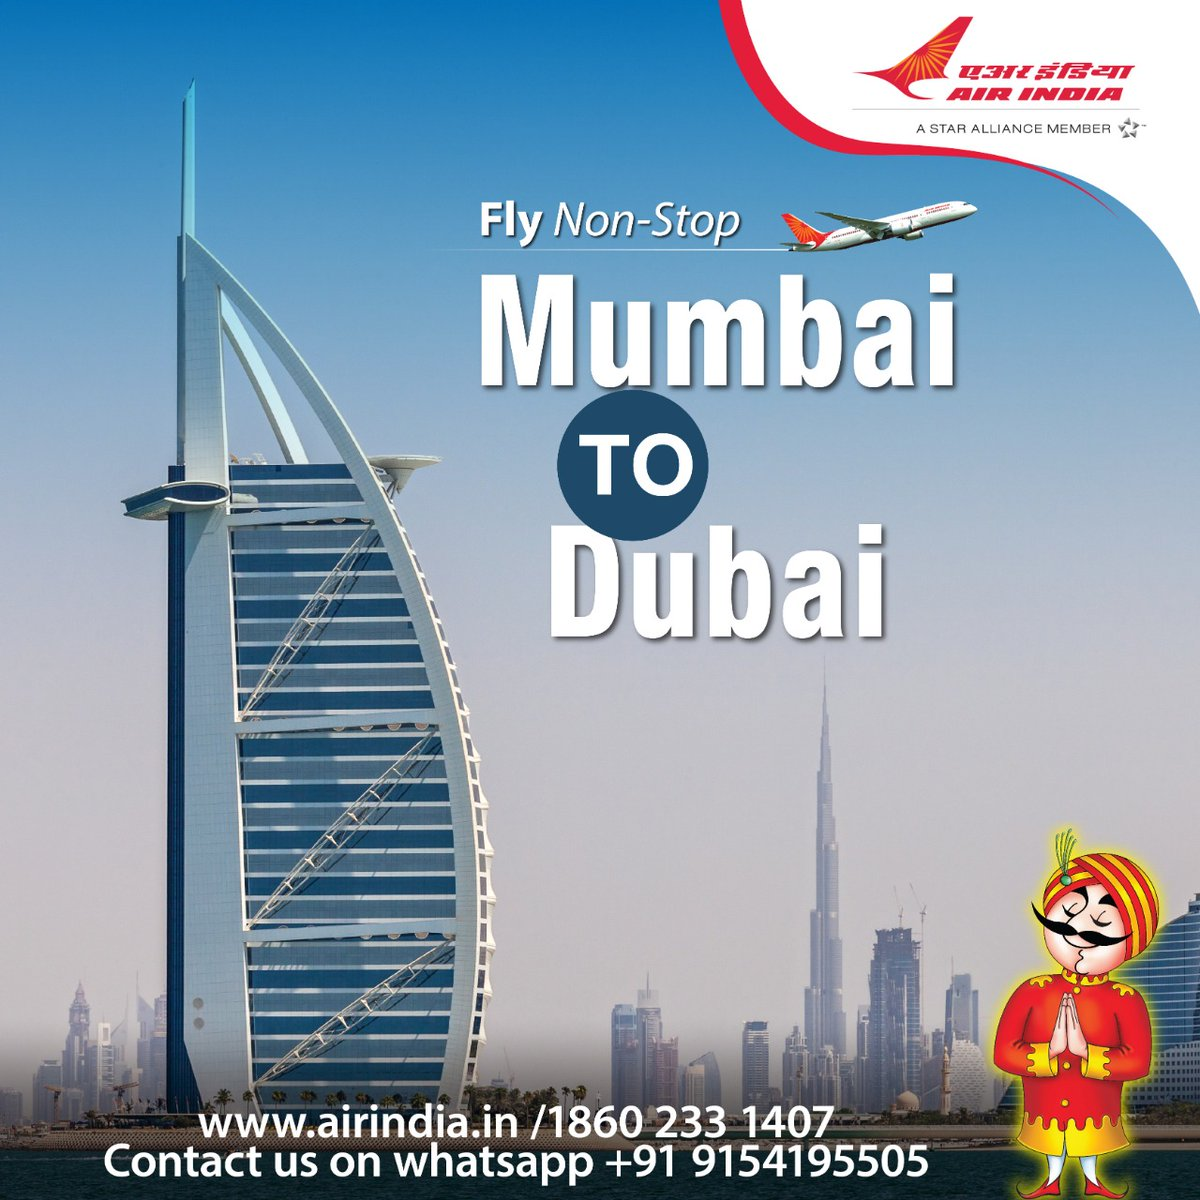 #FlyAI : Fly non-stop between Mumbai and Dubai.  Booking open through Air India website, Booking Offices, Call Centre and Authorised Travel Agents.  For detailed schedule please visit the link